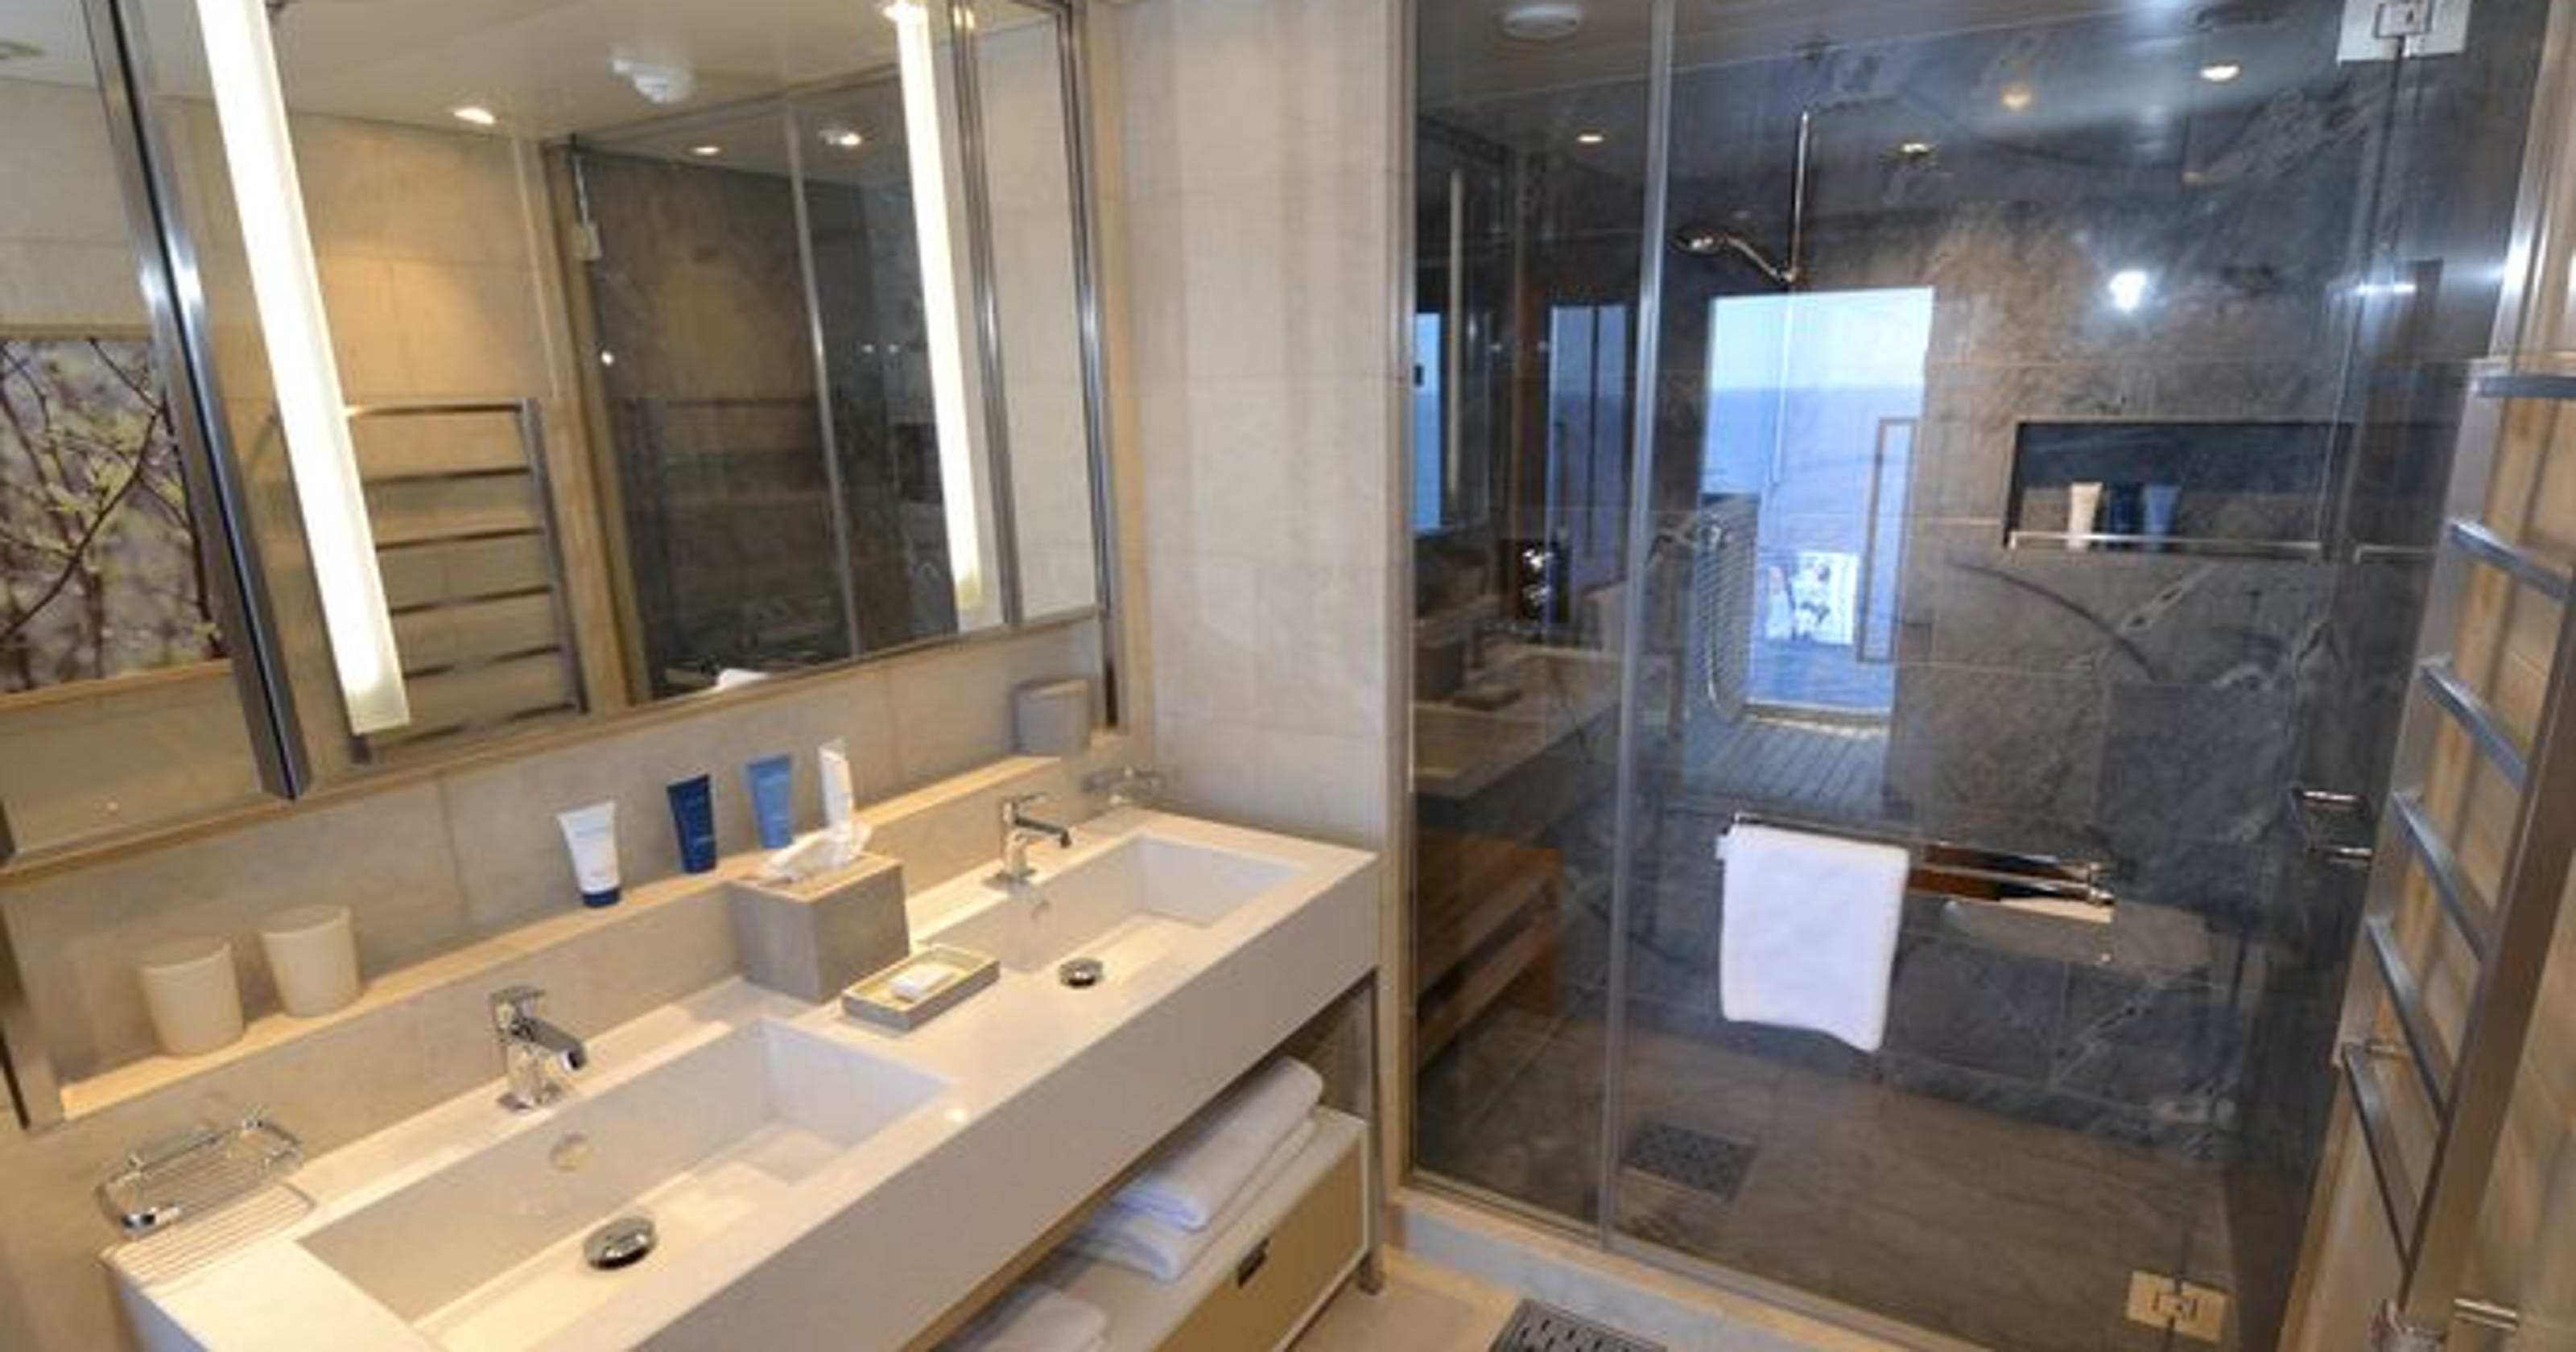 Viking Re Installs Shower Doors On Viking Star Due To Shattering Issue